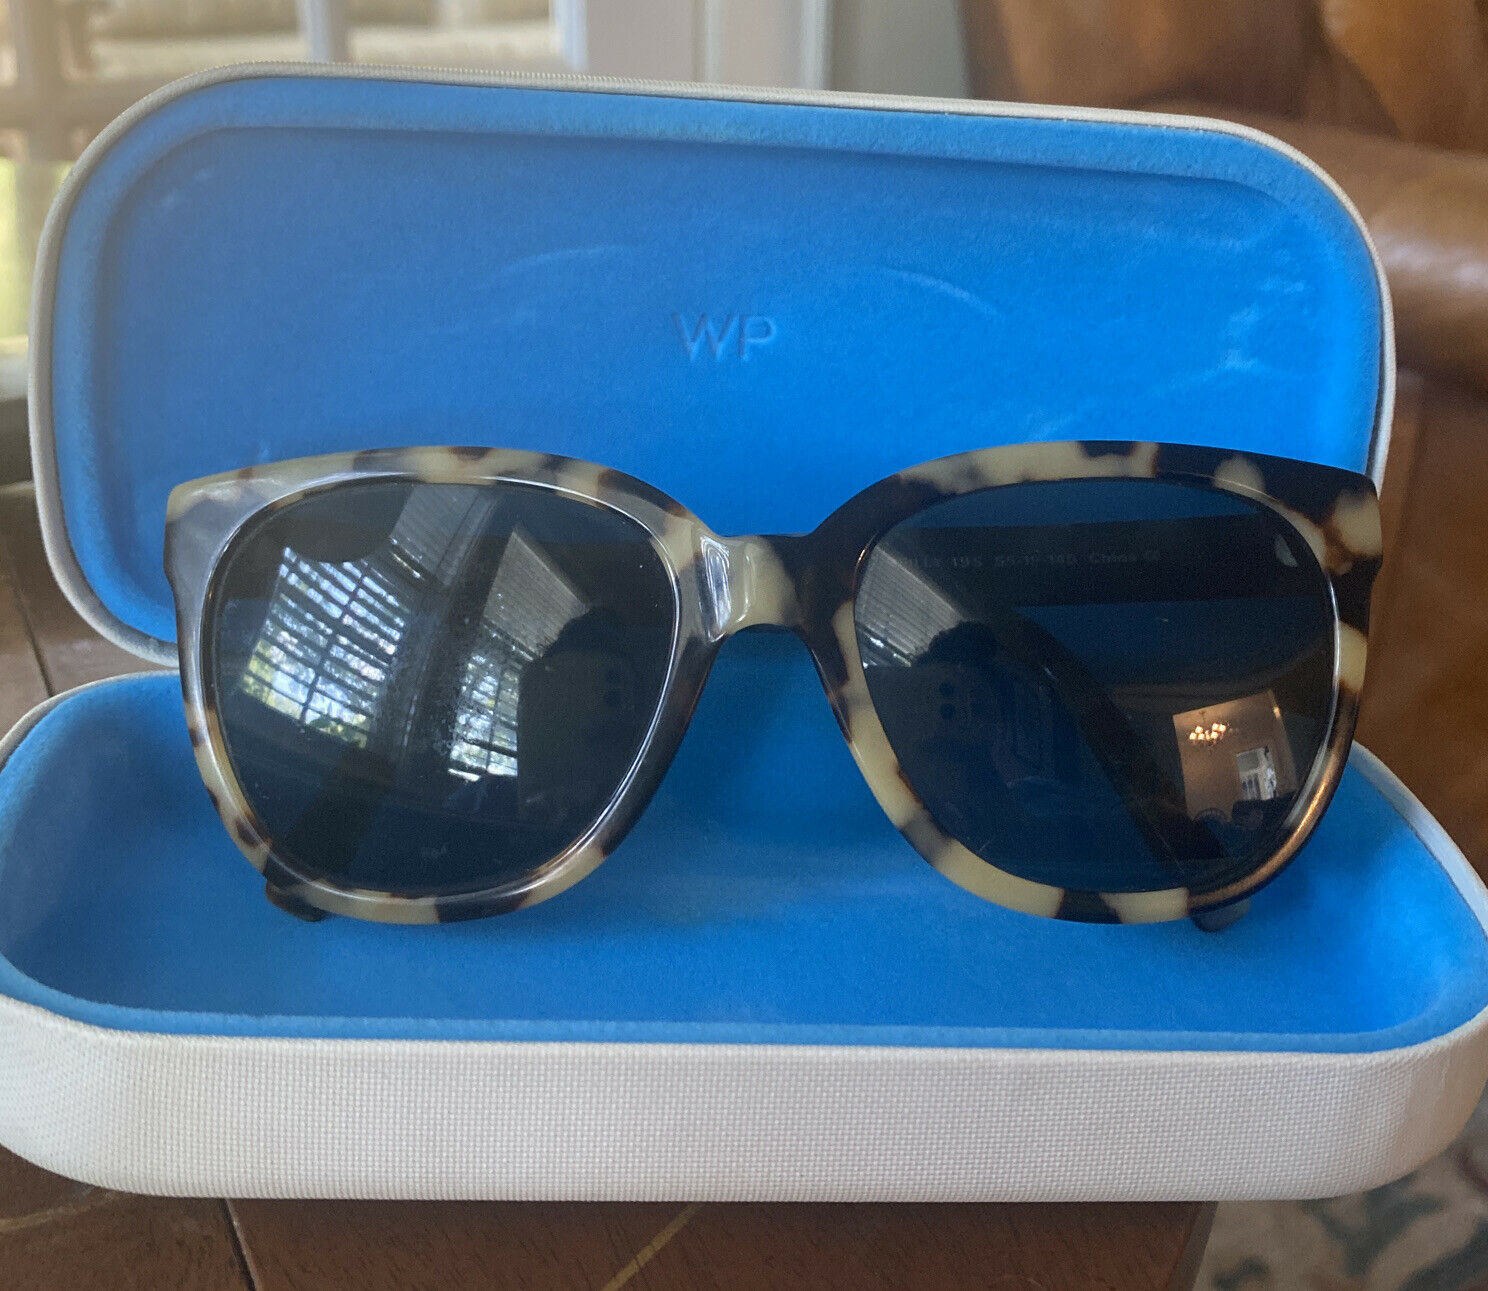 warby parker Reilly 195  sunglasses Women's - image 2